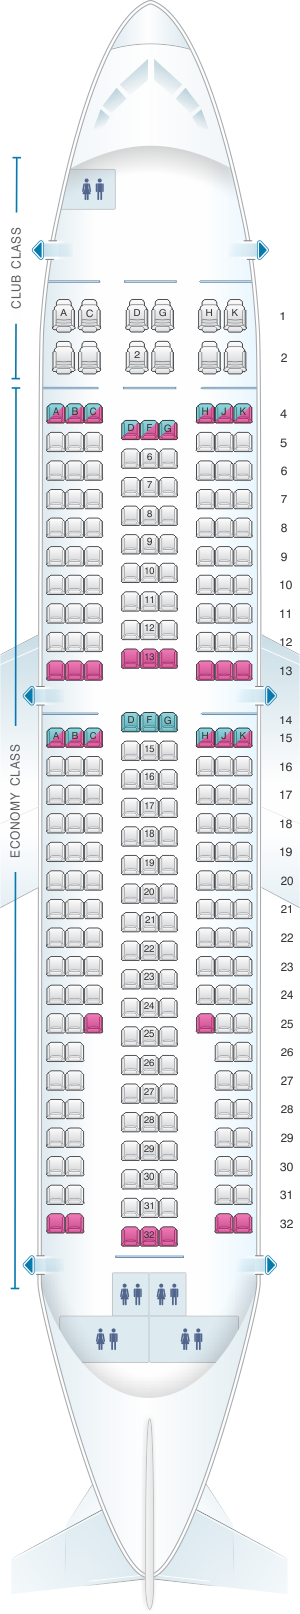 Seat map air transat airbus a310 300 for Avion air transat interieur